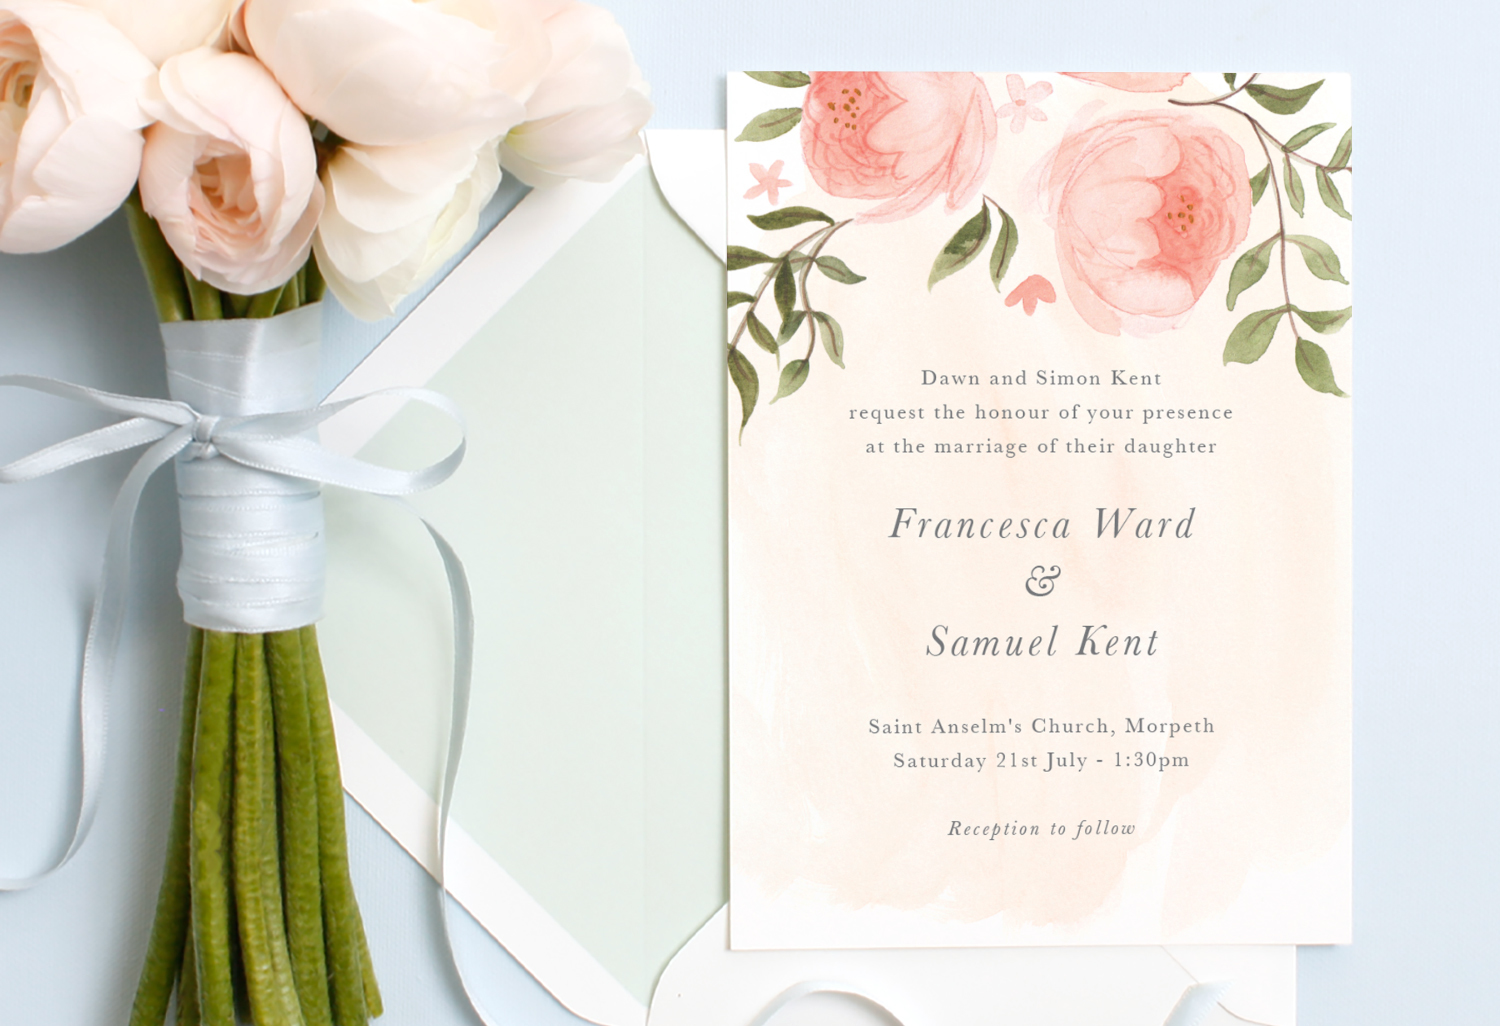 Wedding Reception Invitation Wording.Wedding Invitation Wording Ideas Inspiration Papier